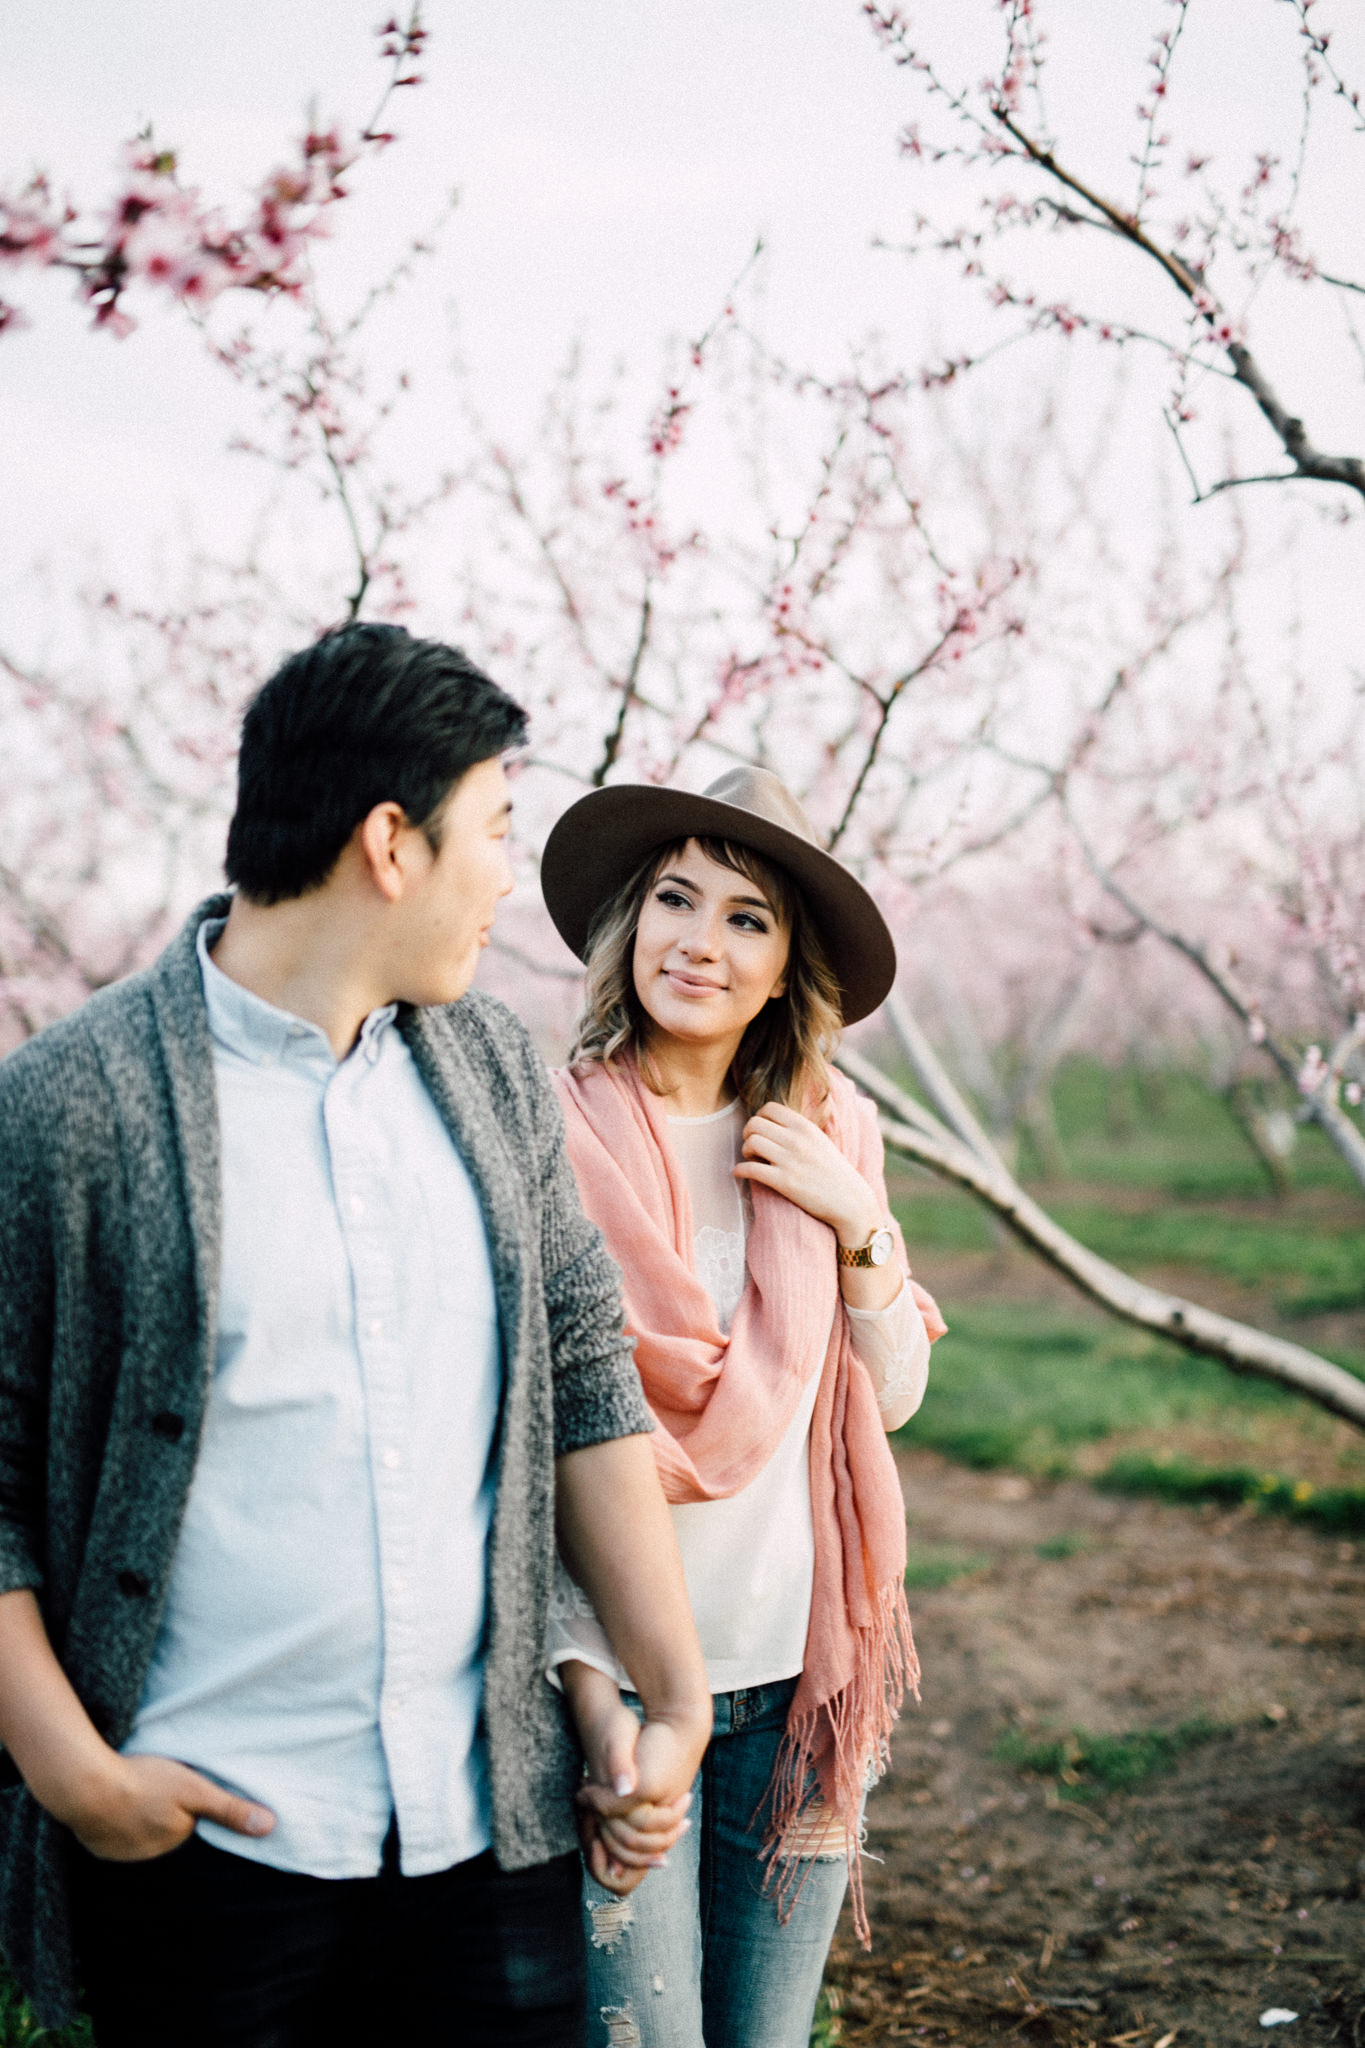 Niagara-Portrait-Session-Niagara-On-The-Lake-Cherry-Blossoms-photography-by-Simply-Lace-Photography-038.JPG